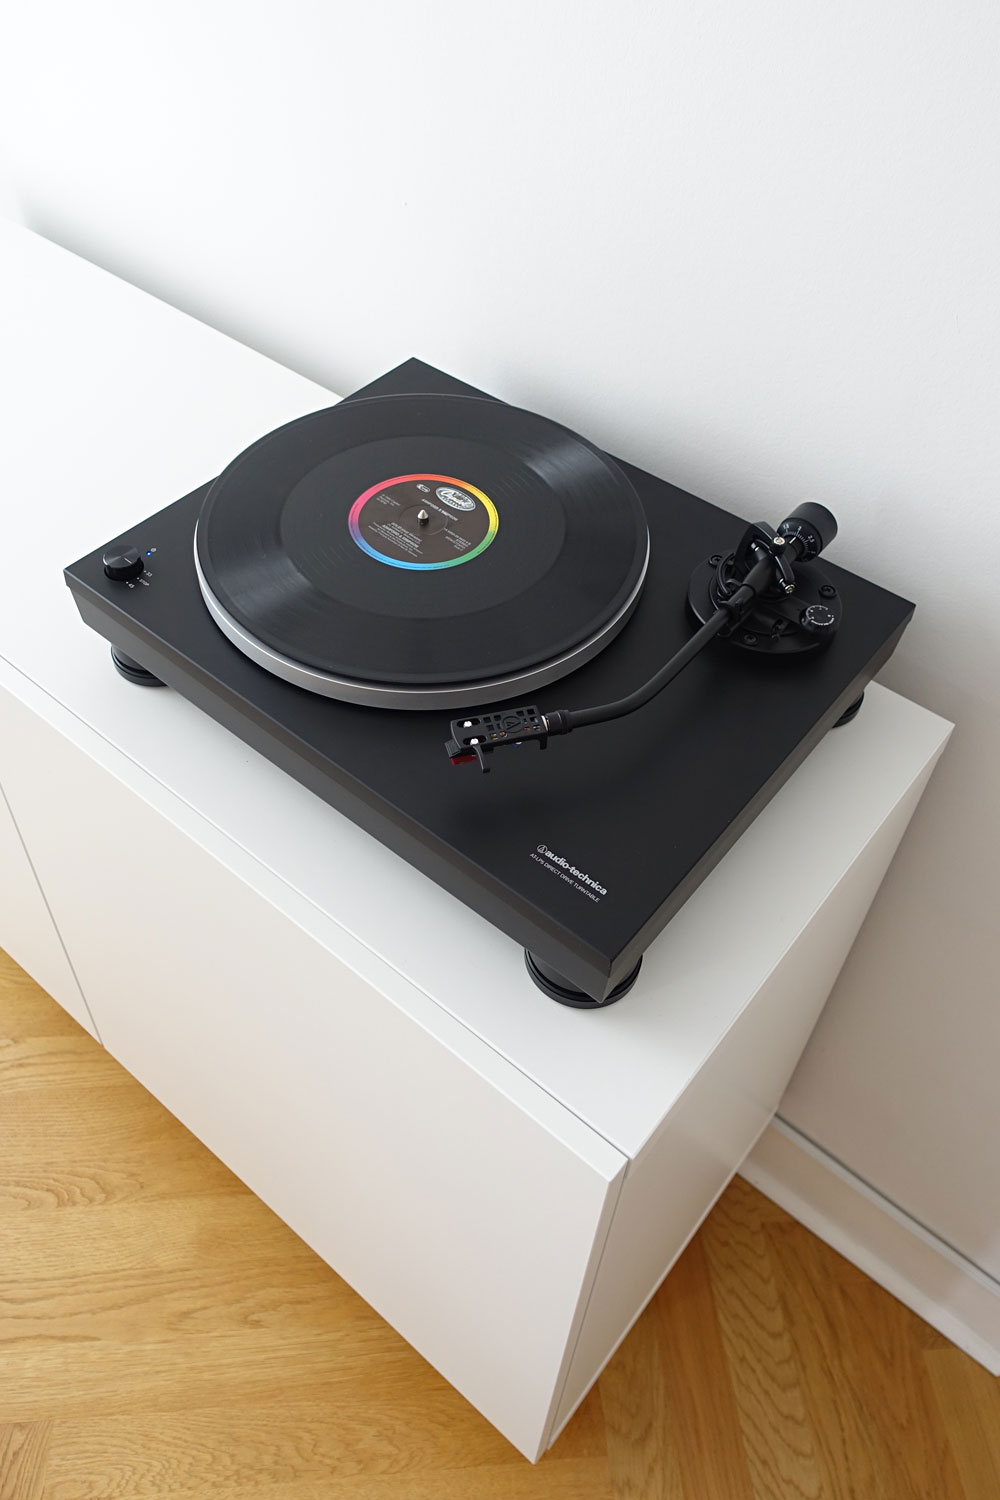 Audio-Technica-LP5-Test-Review-Direct-Drive-HiFi-Turntable-Plattenspieler-Direktantrieb-Staub-Mood